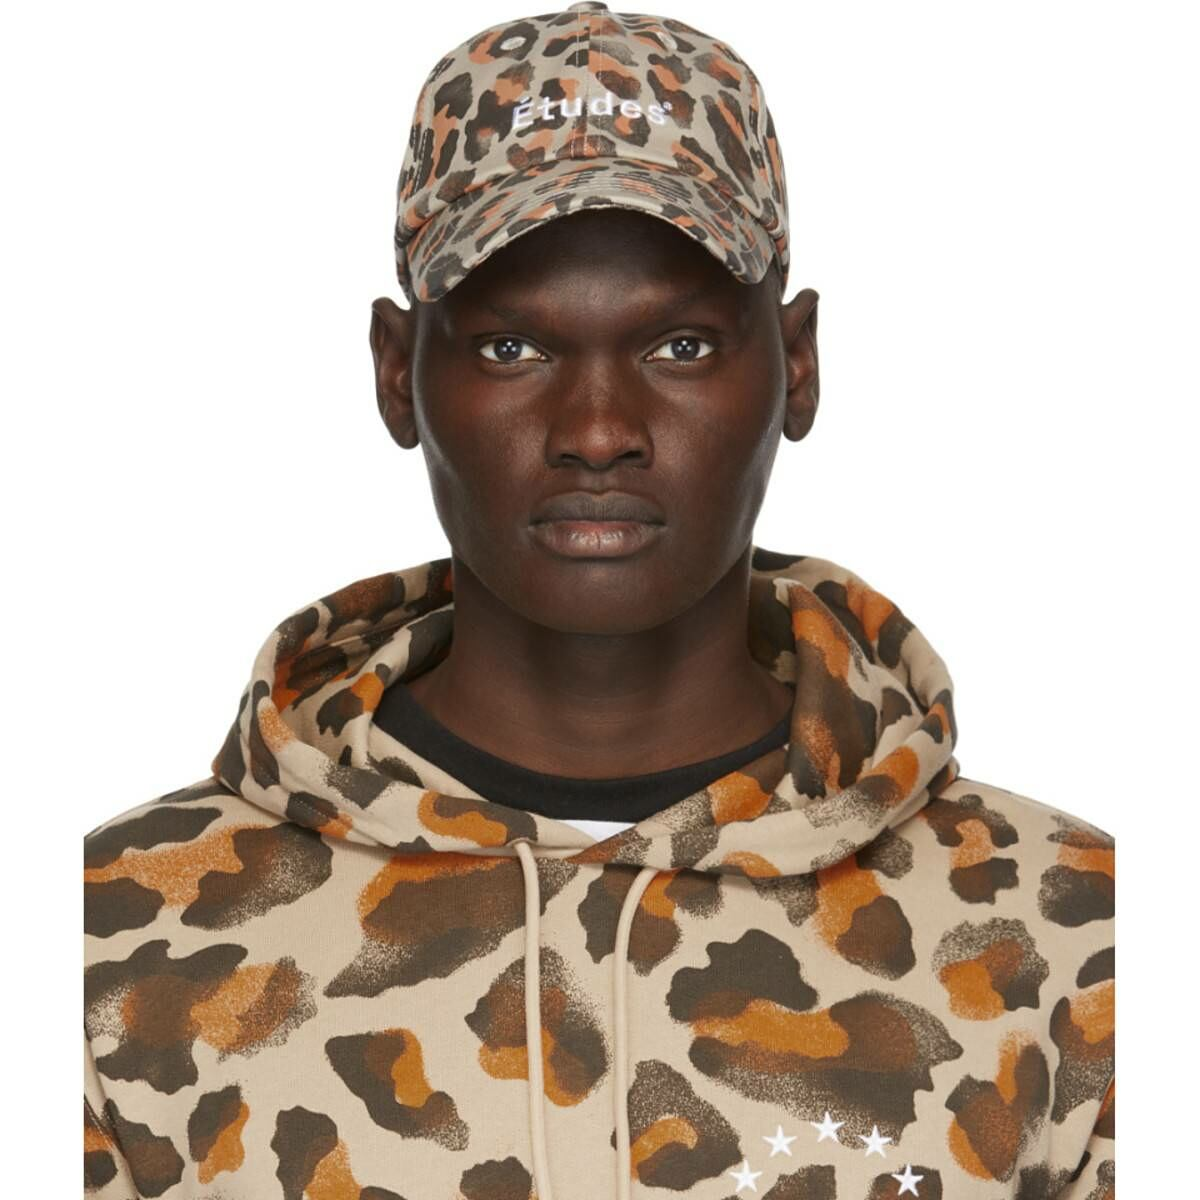 Etudes Beige Leopard Booster Cap Ssense USA MEN Men ACCESSORIES Mens CAPS